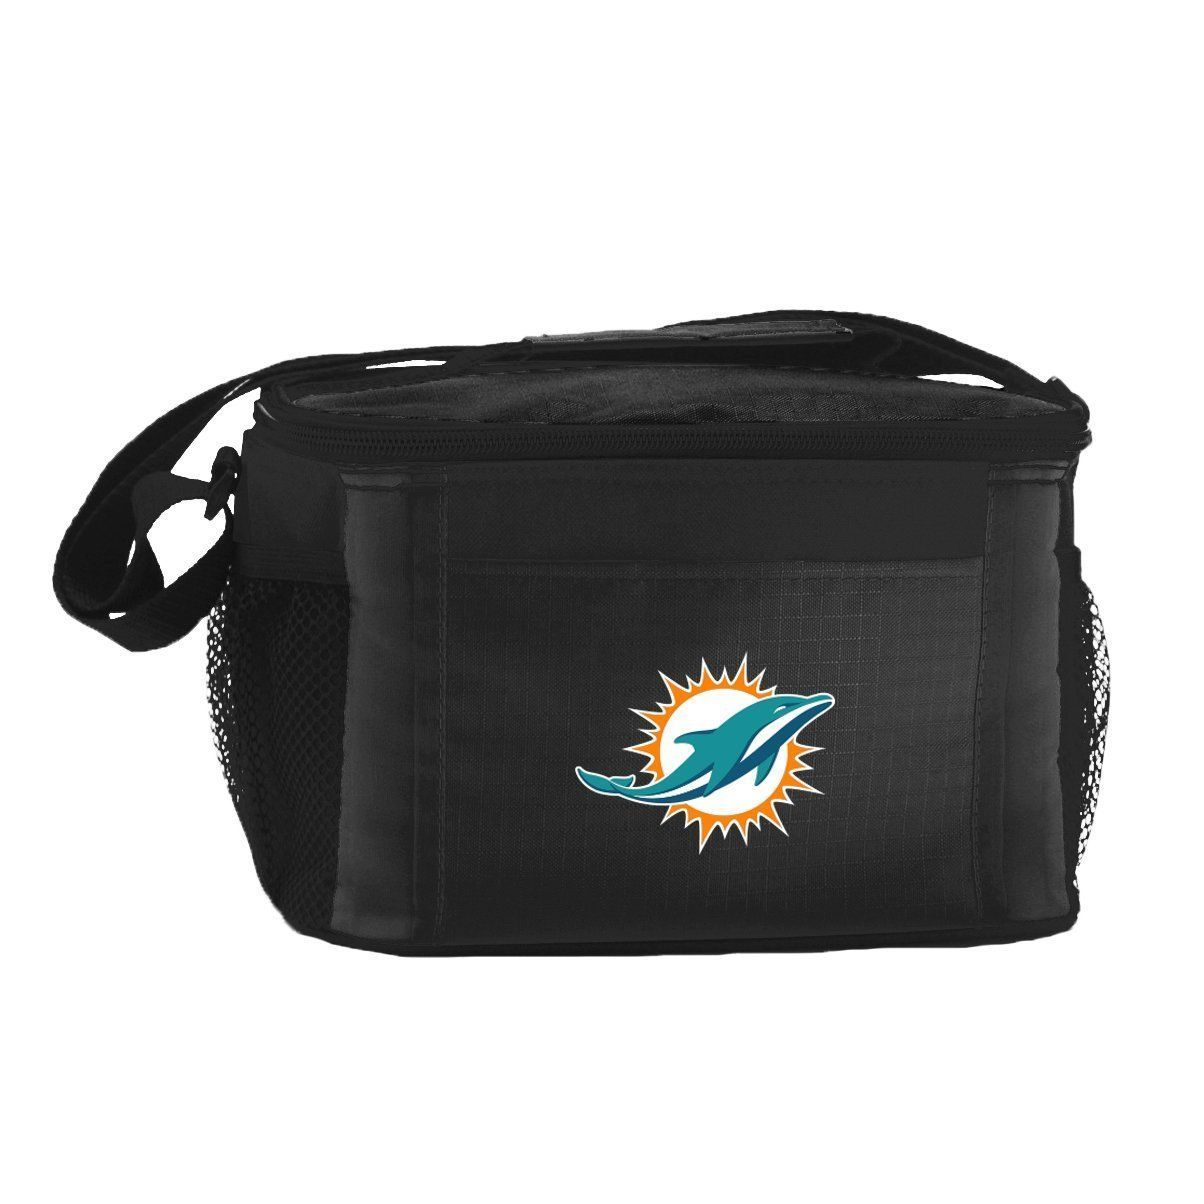 MIAMI DOLPHINS LUNCH TOTE 6 PK BEER SODA TEAM LOGO KOOLER BAG NFL FOOTBALL